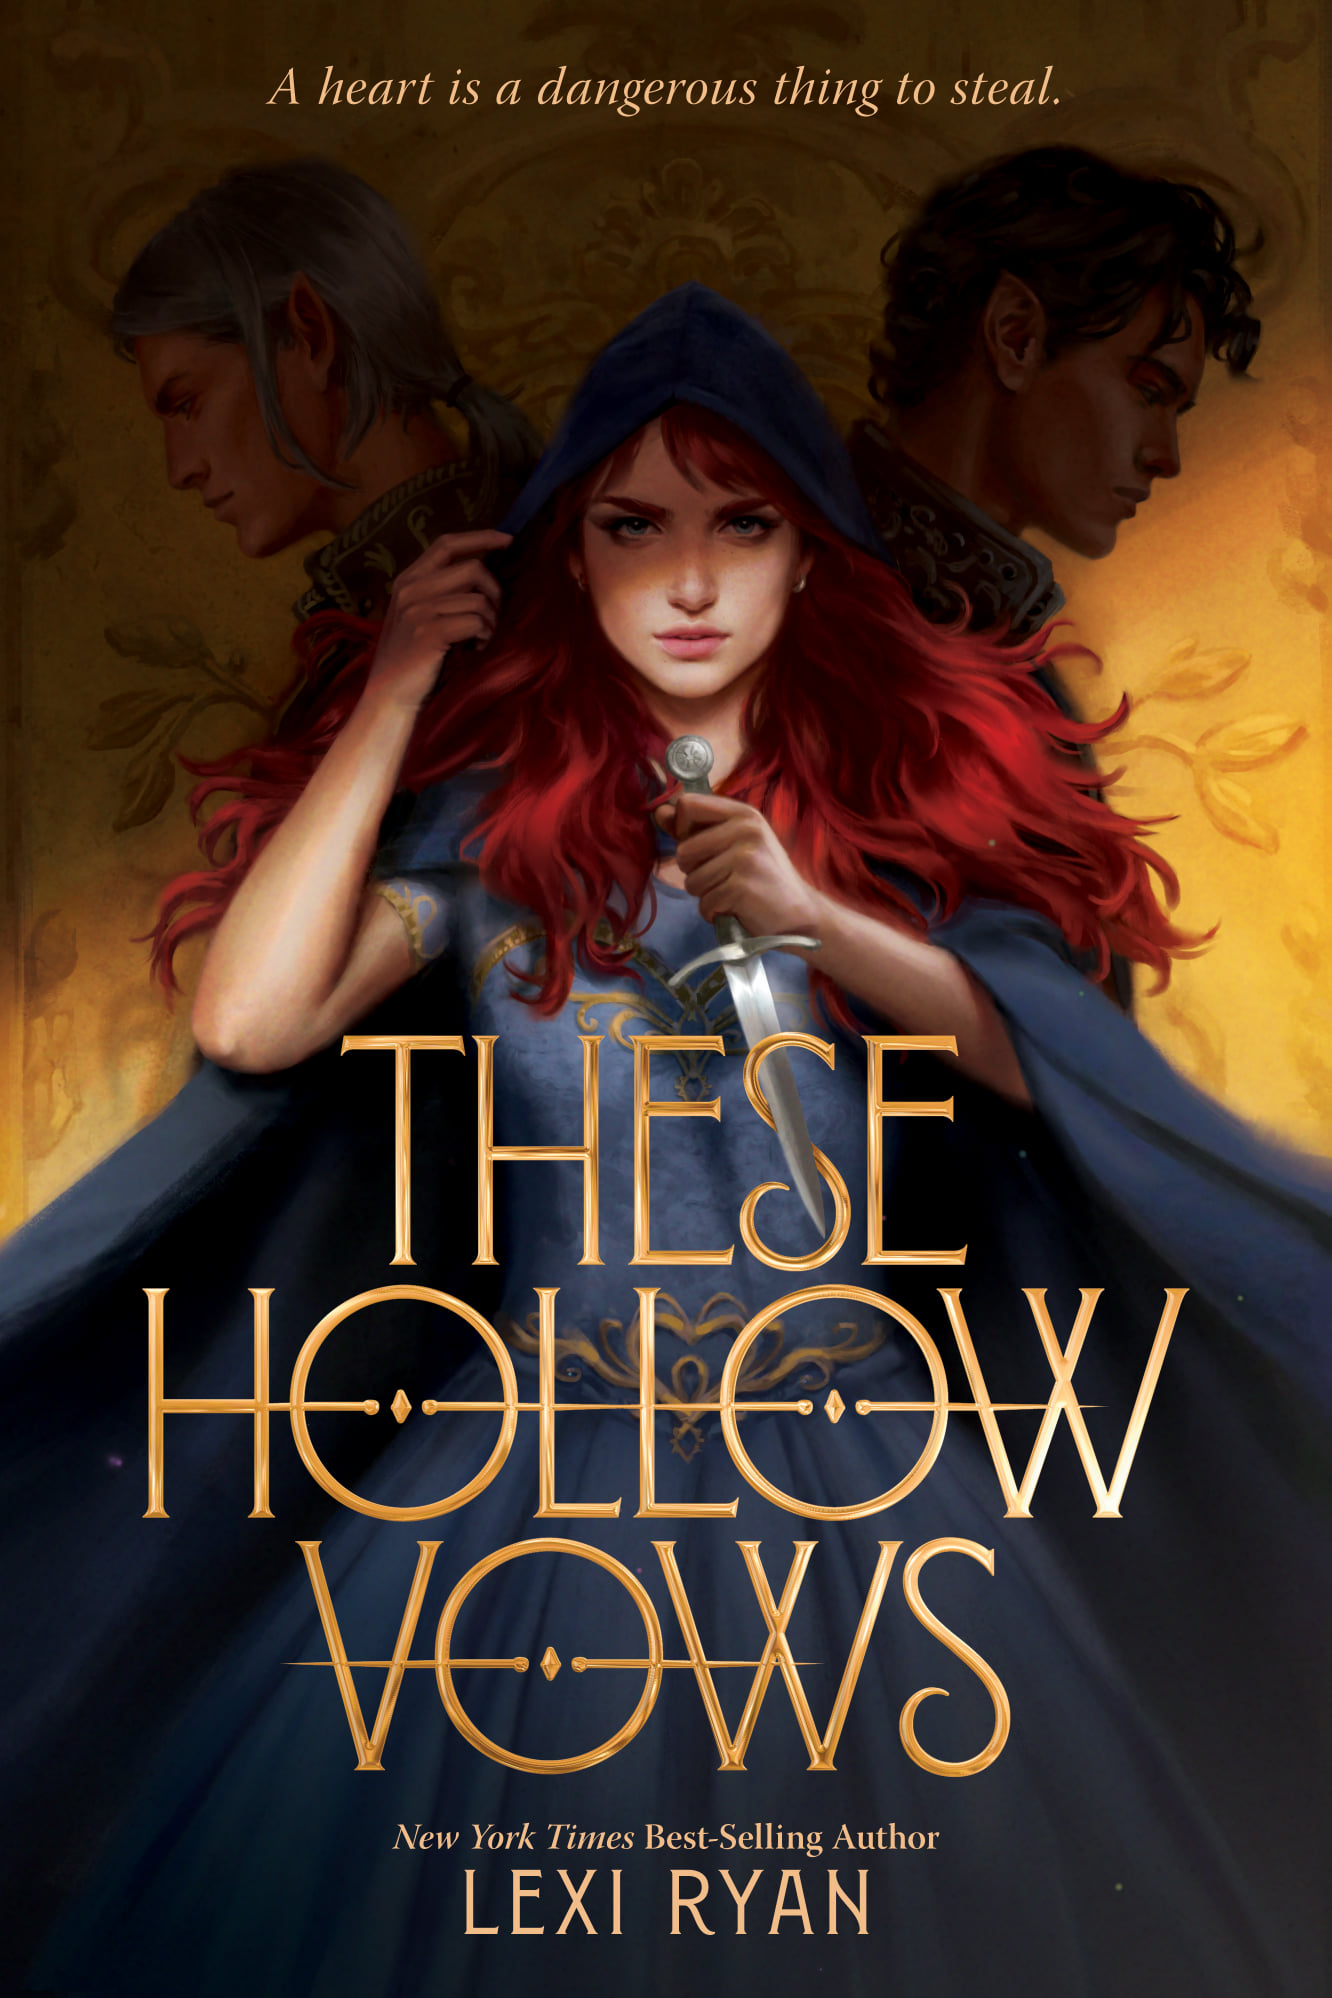 These Hollow Vows (These Hollow Vows, #1)